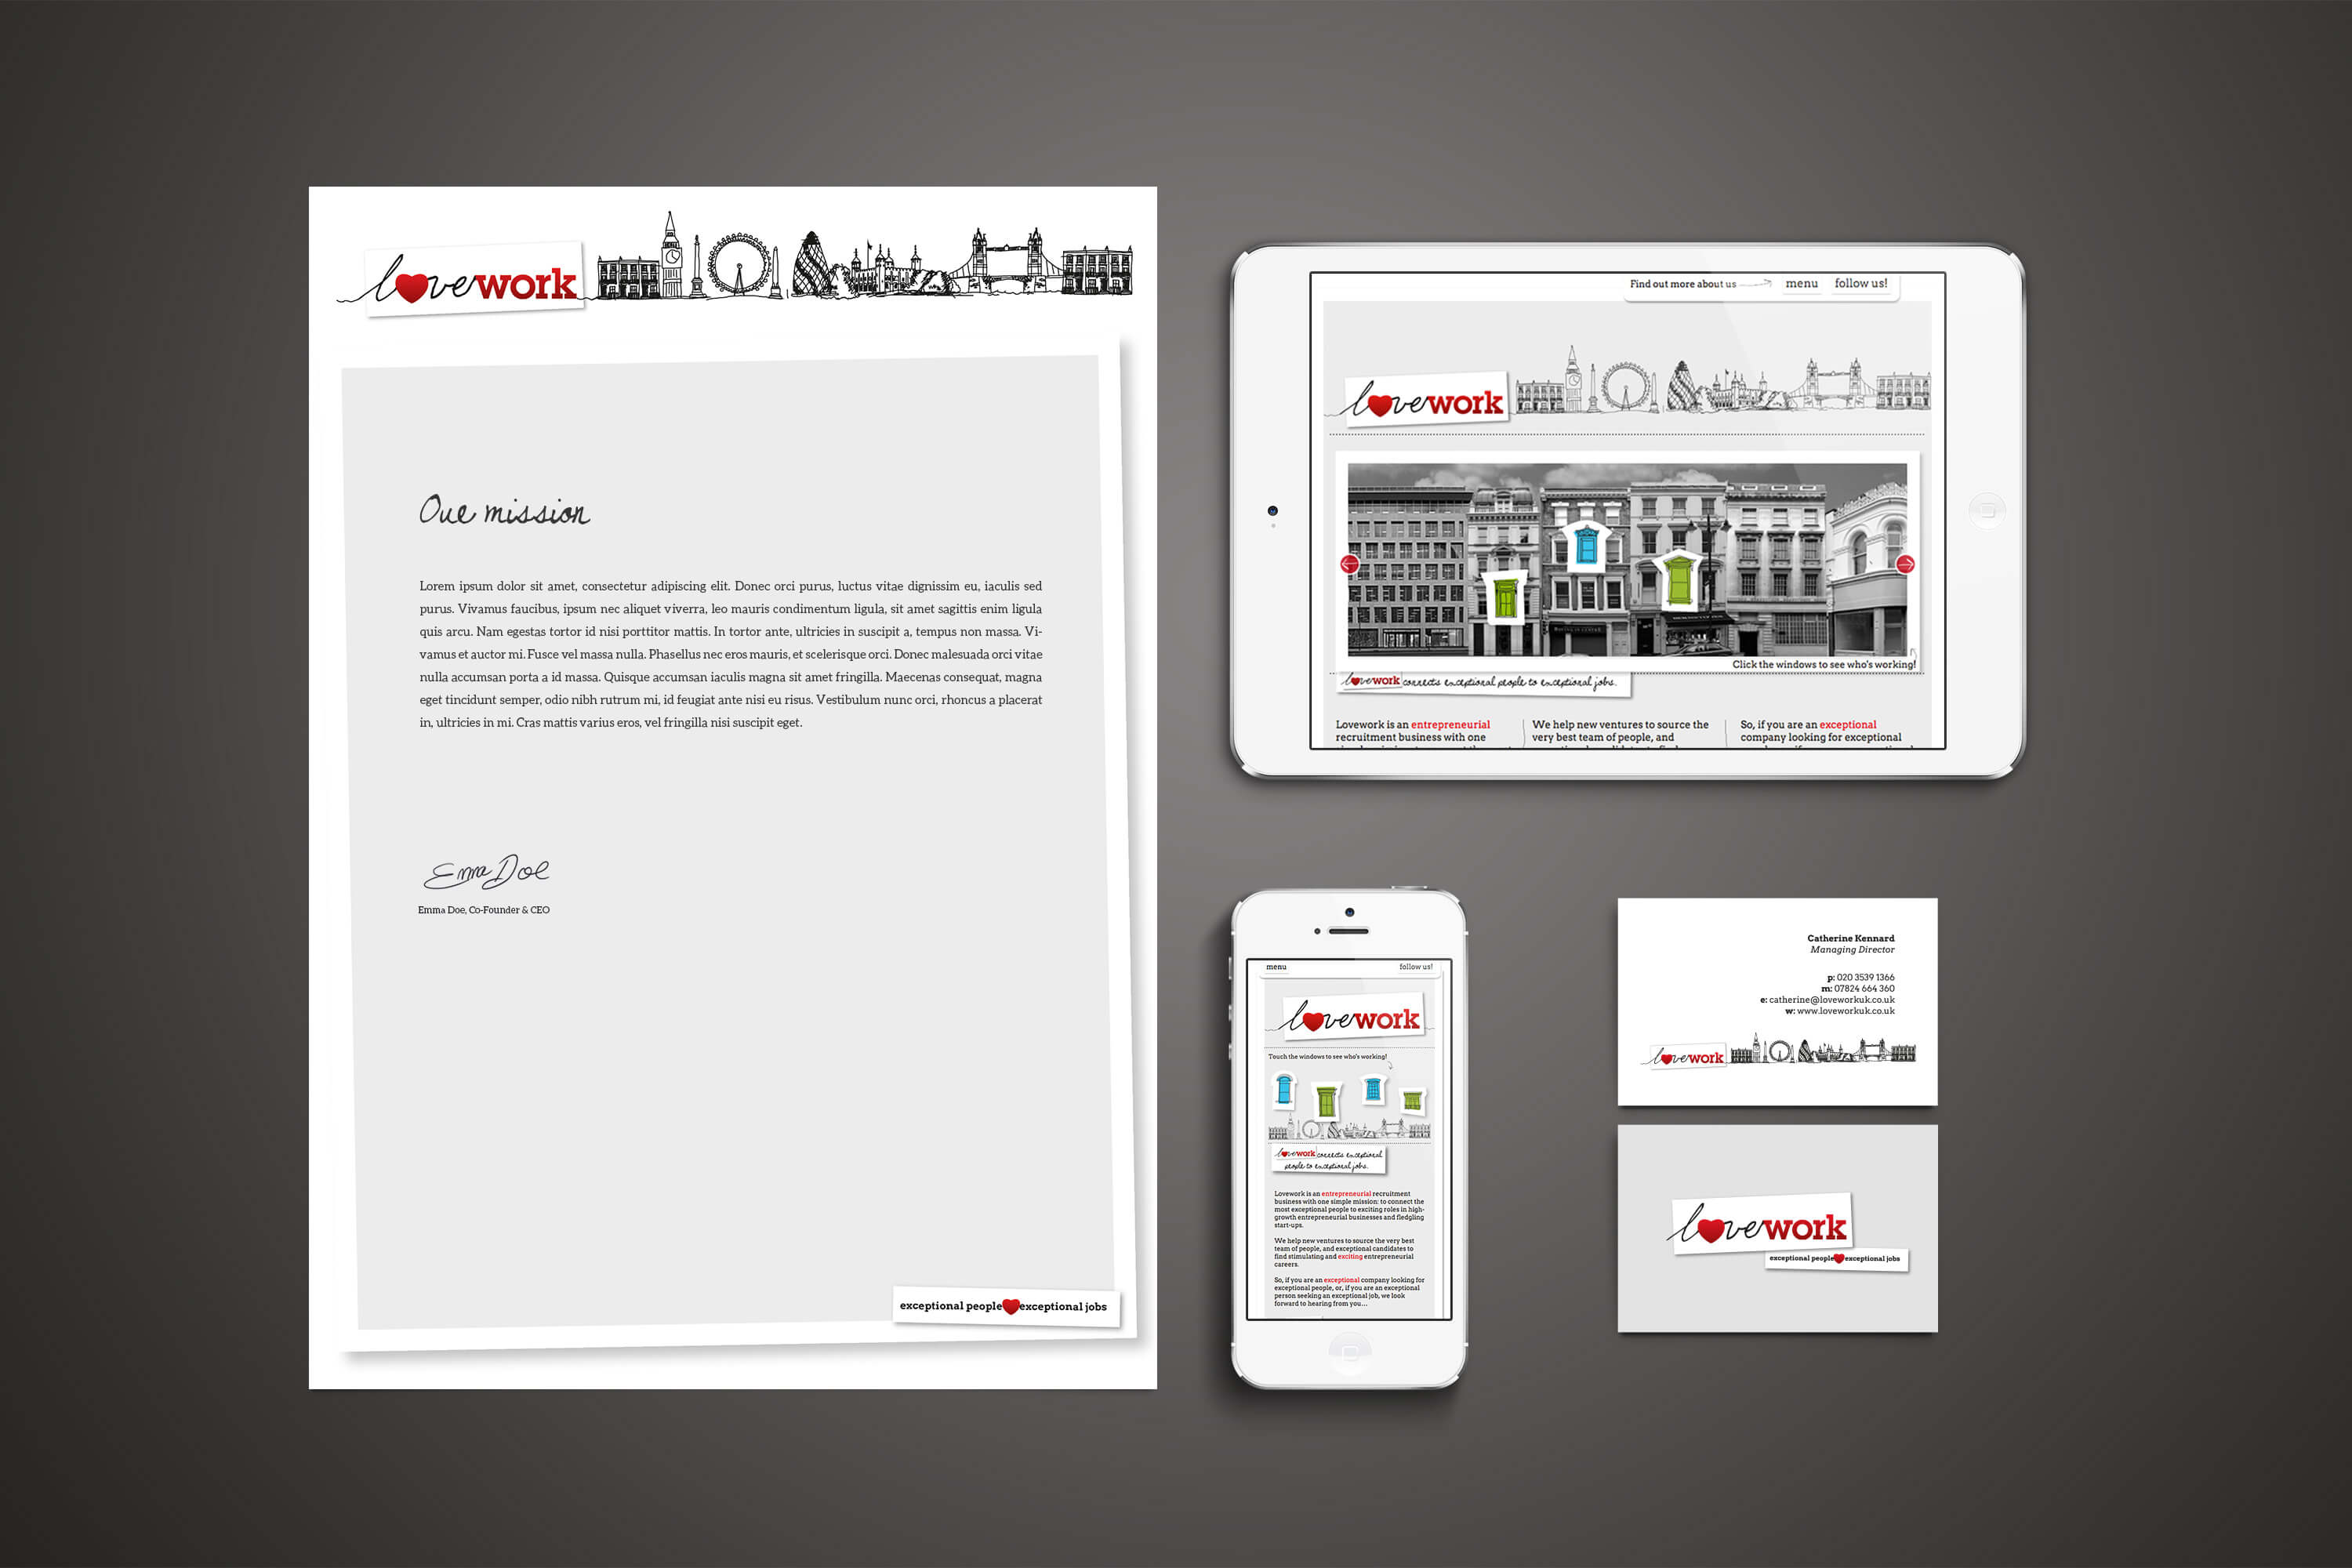 Photo showing Lovework branding on letterhead, business cards and website design on iPhone and iPad